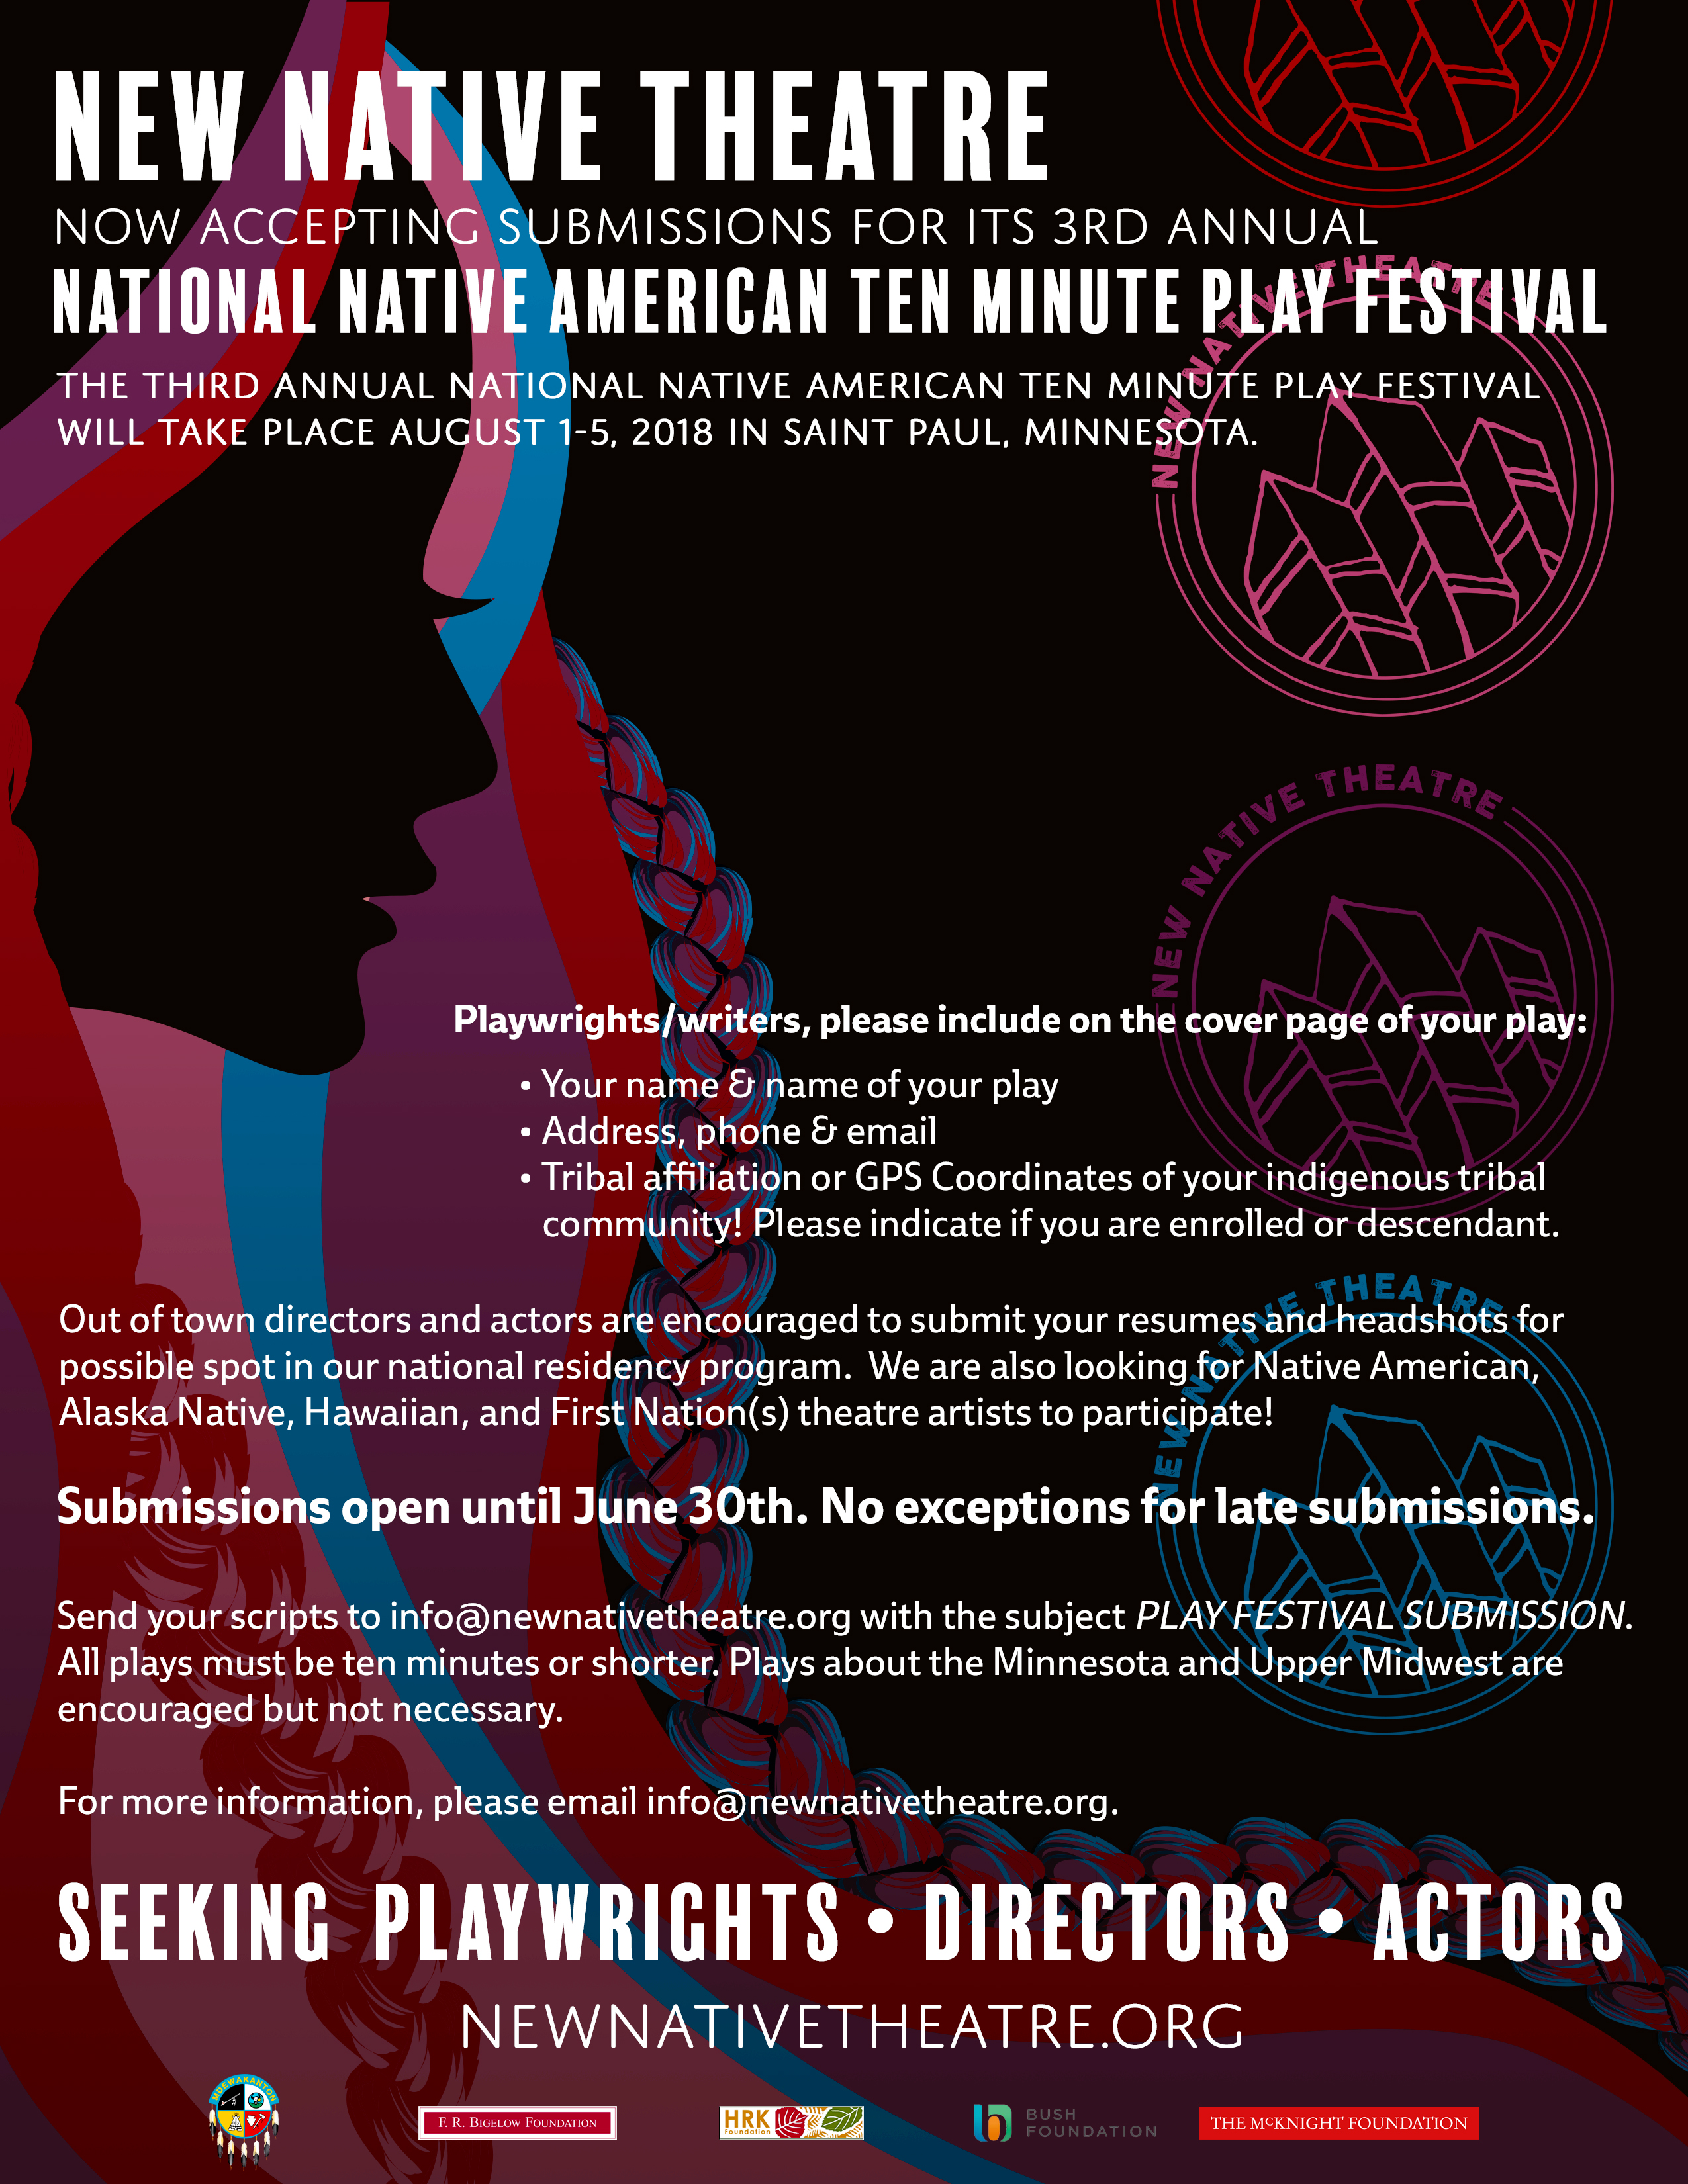 2018 National Native American Ten Minute Play Festival | New Native